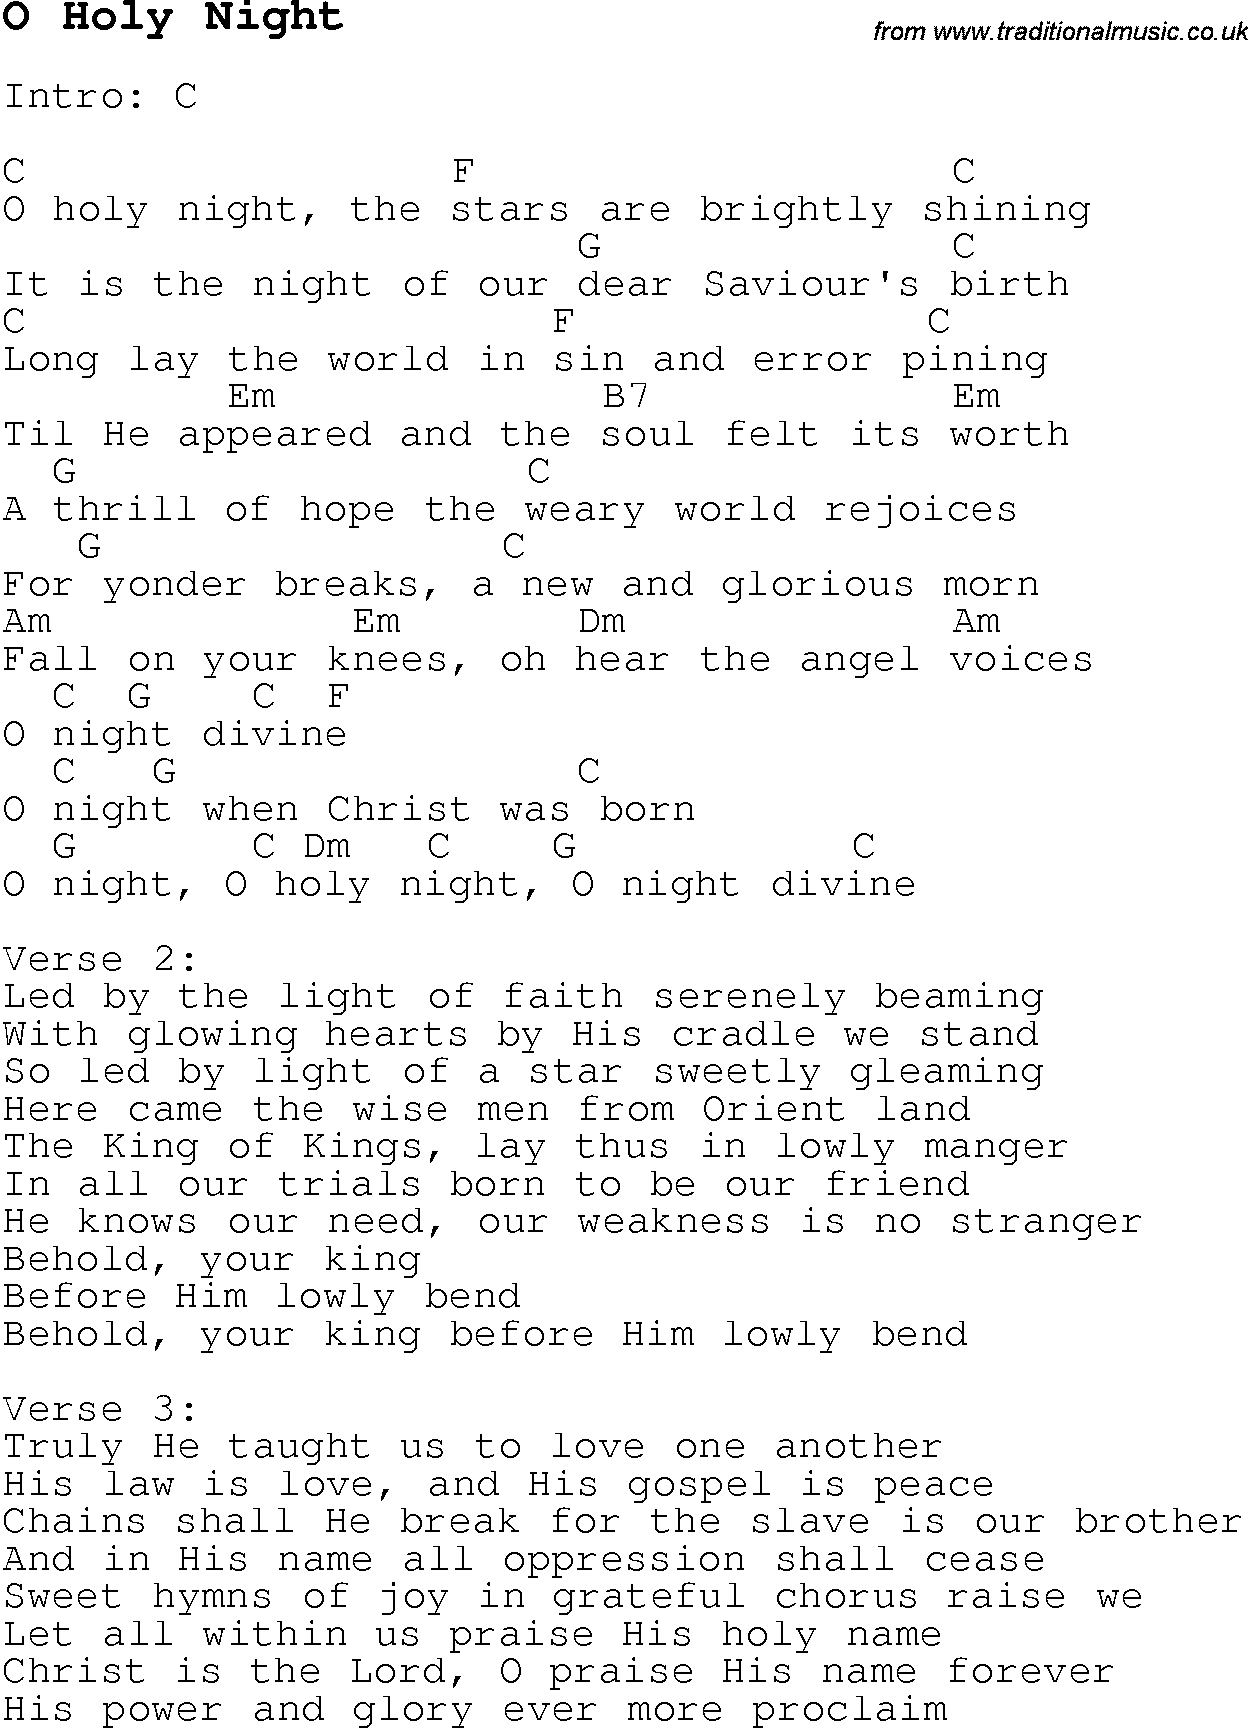 Christmas Carol Song Lyrics With Chords For O Holy Night Guitar Chords For Songs Ukulele Chords Songs Guitar Chords And Lyrics Dear winter was written by ryan met, who is not the lead vocalist for the track, although he is the producer. christmas carol song lyrics with chords